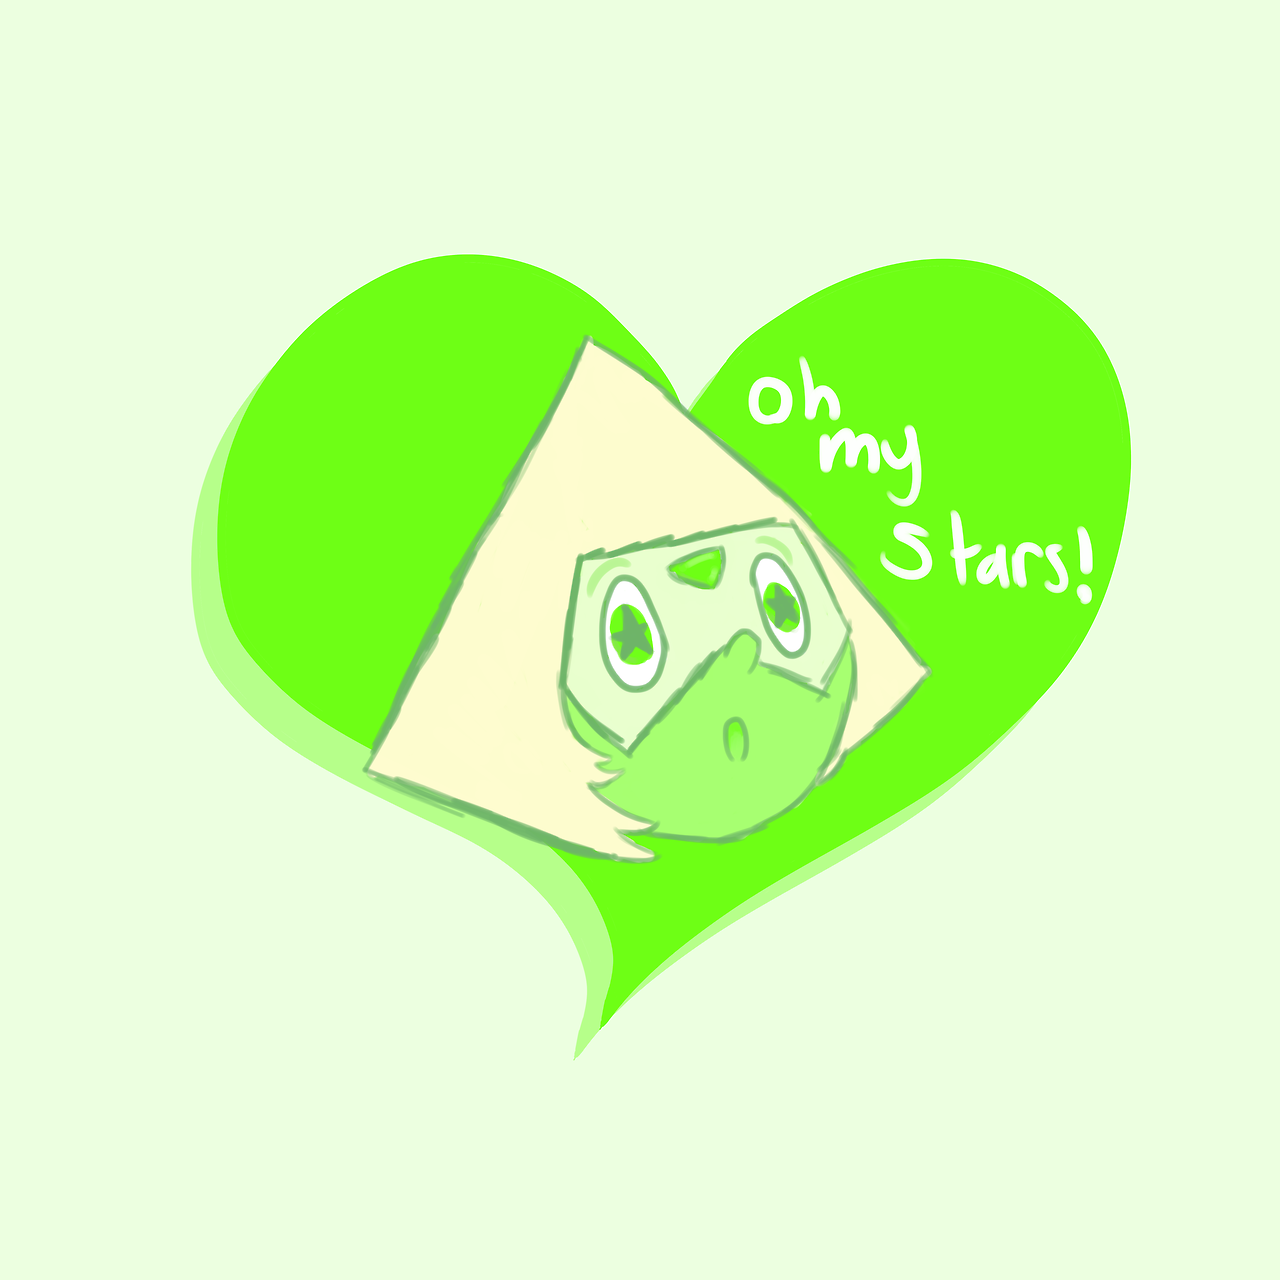 It's Peridot! She's so precious!